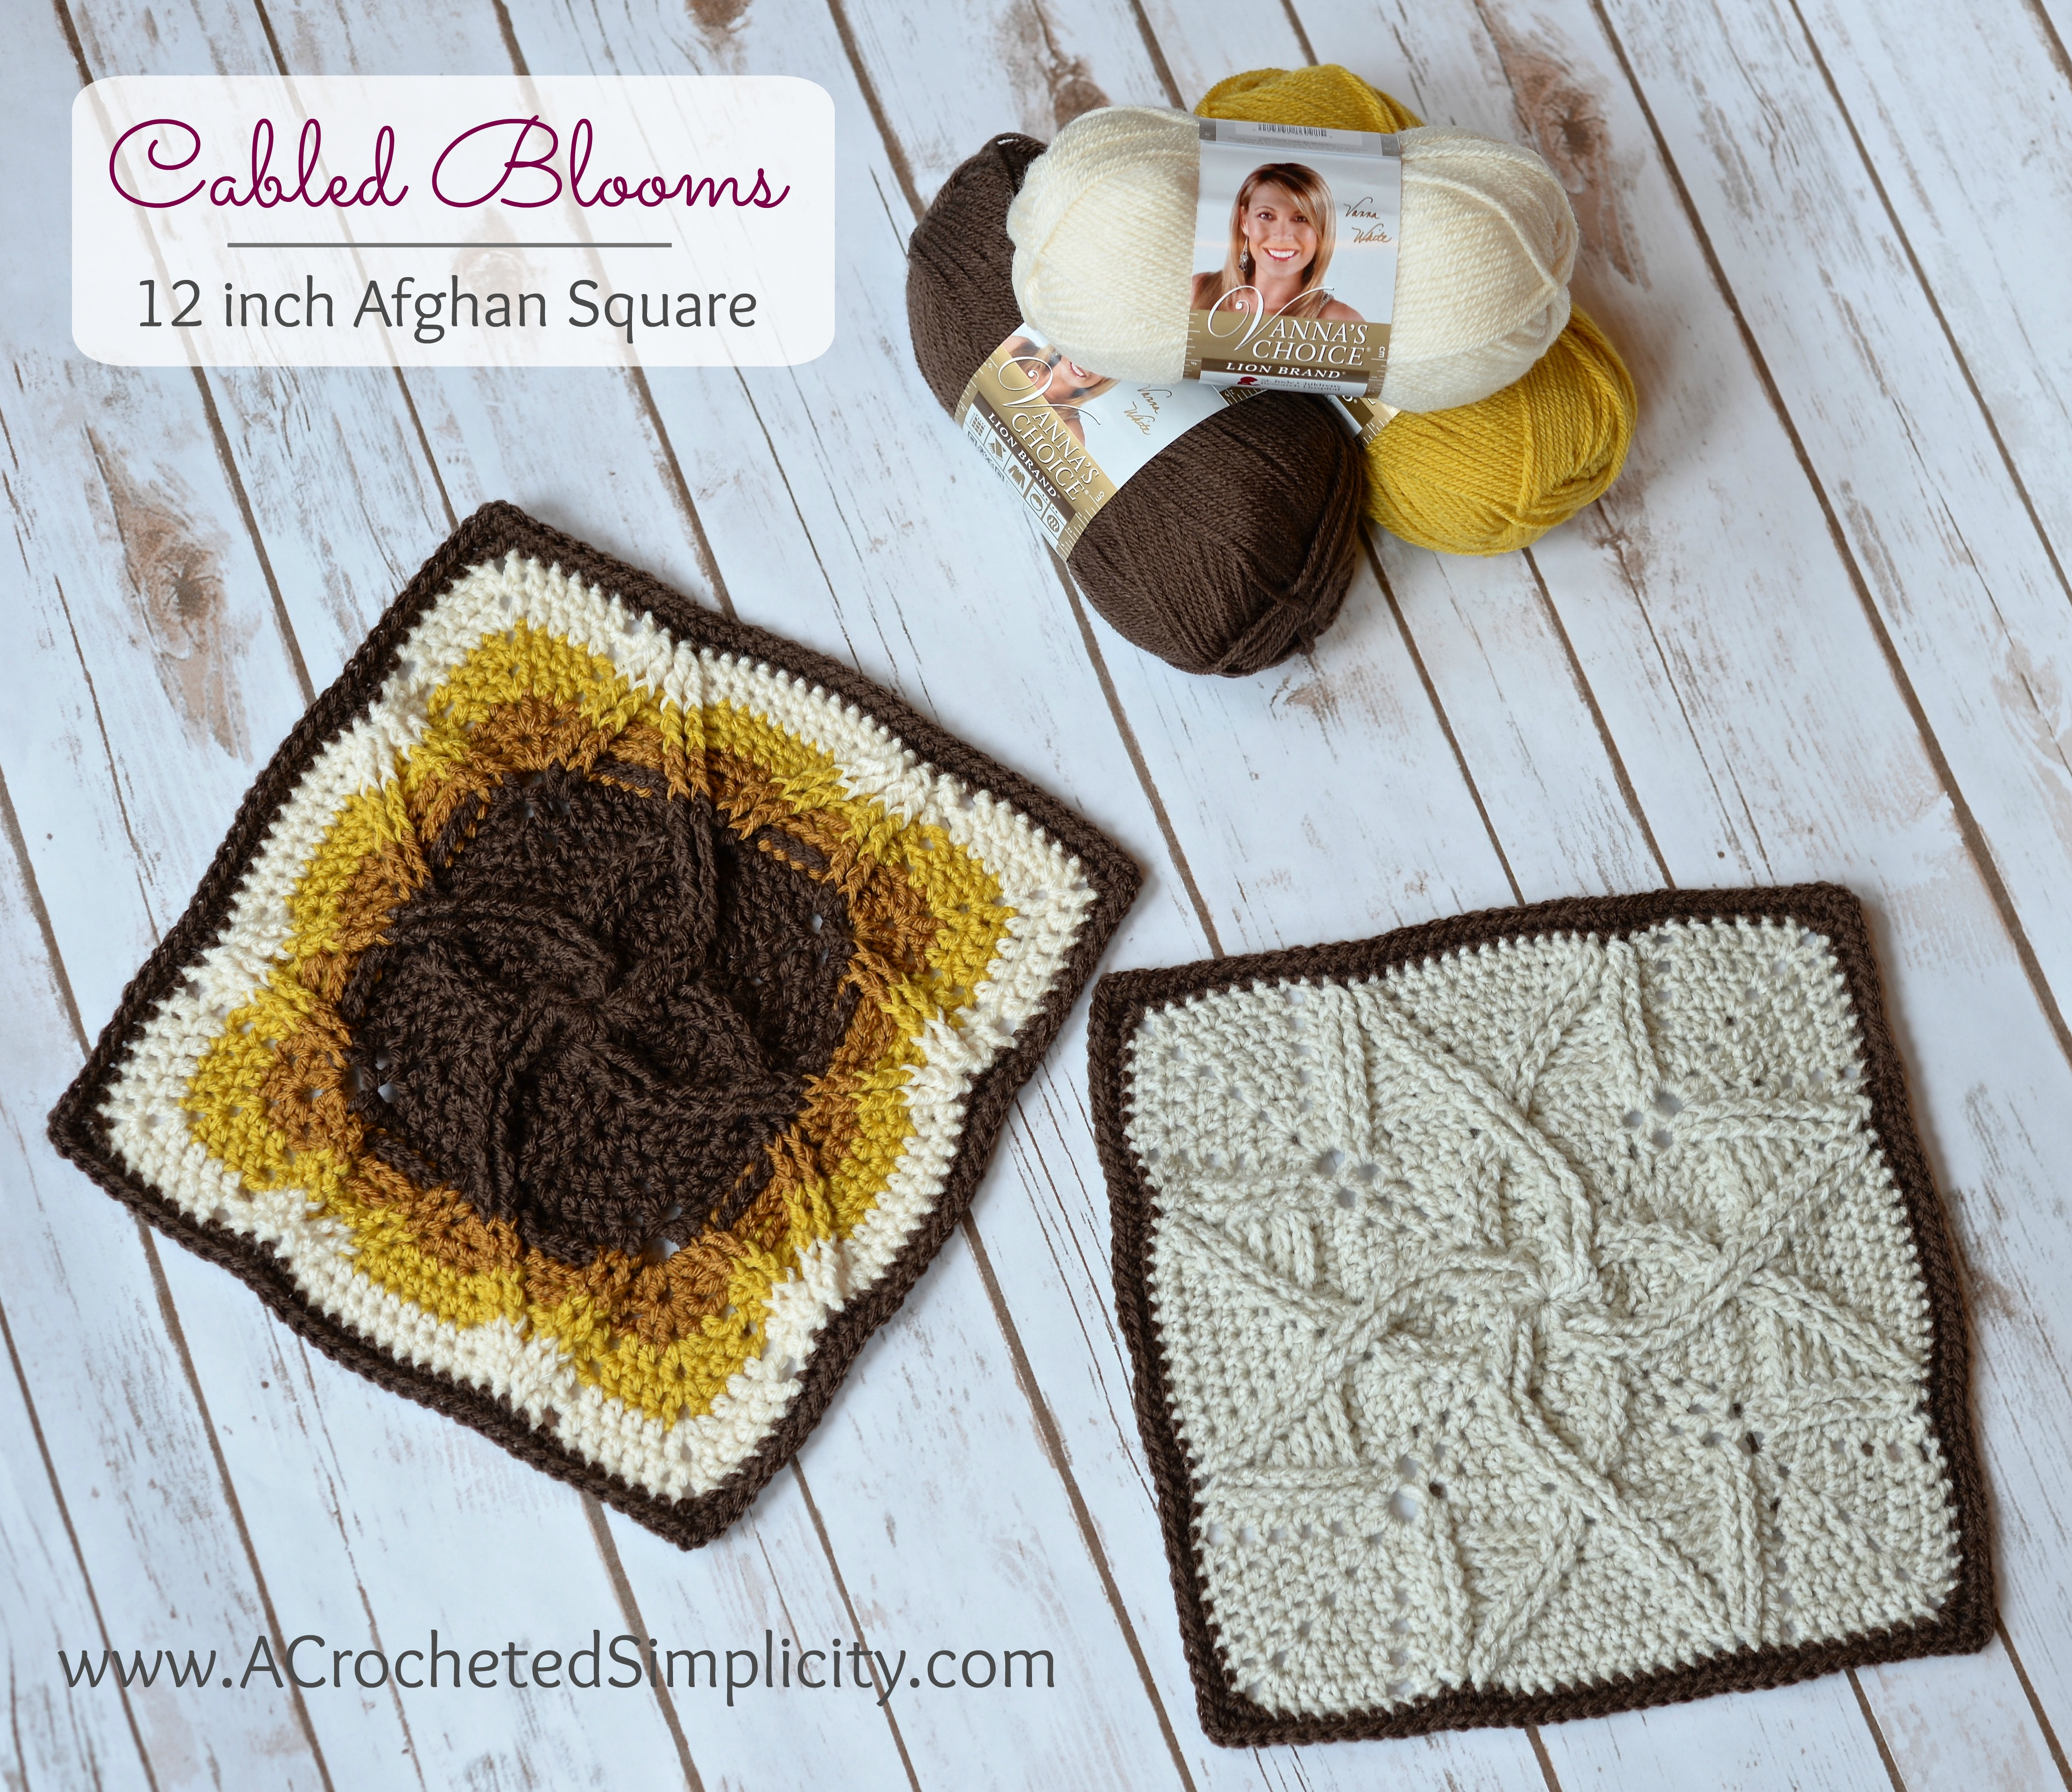 Free Crochet Pattern Cabled Blooms 12 Inch Afghan Square A